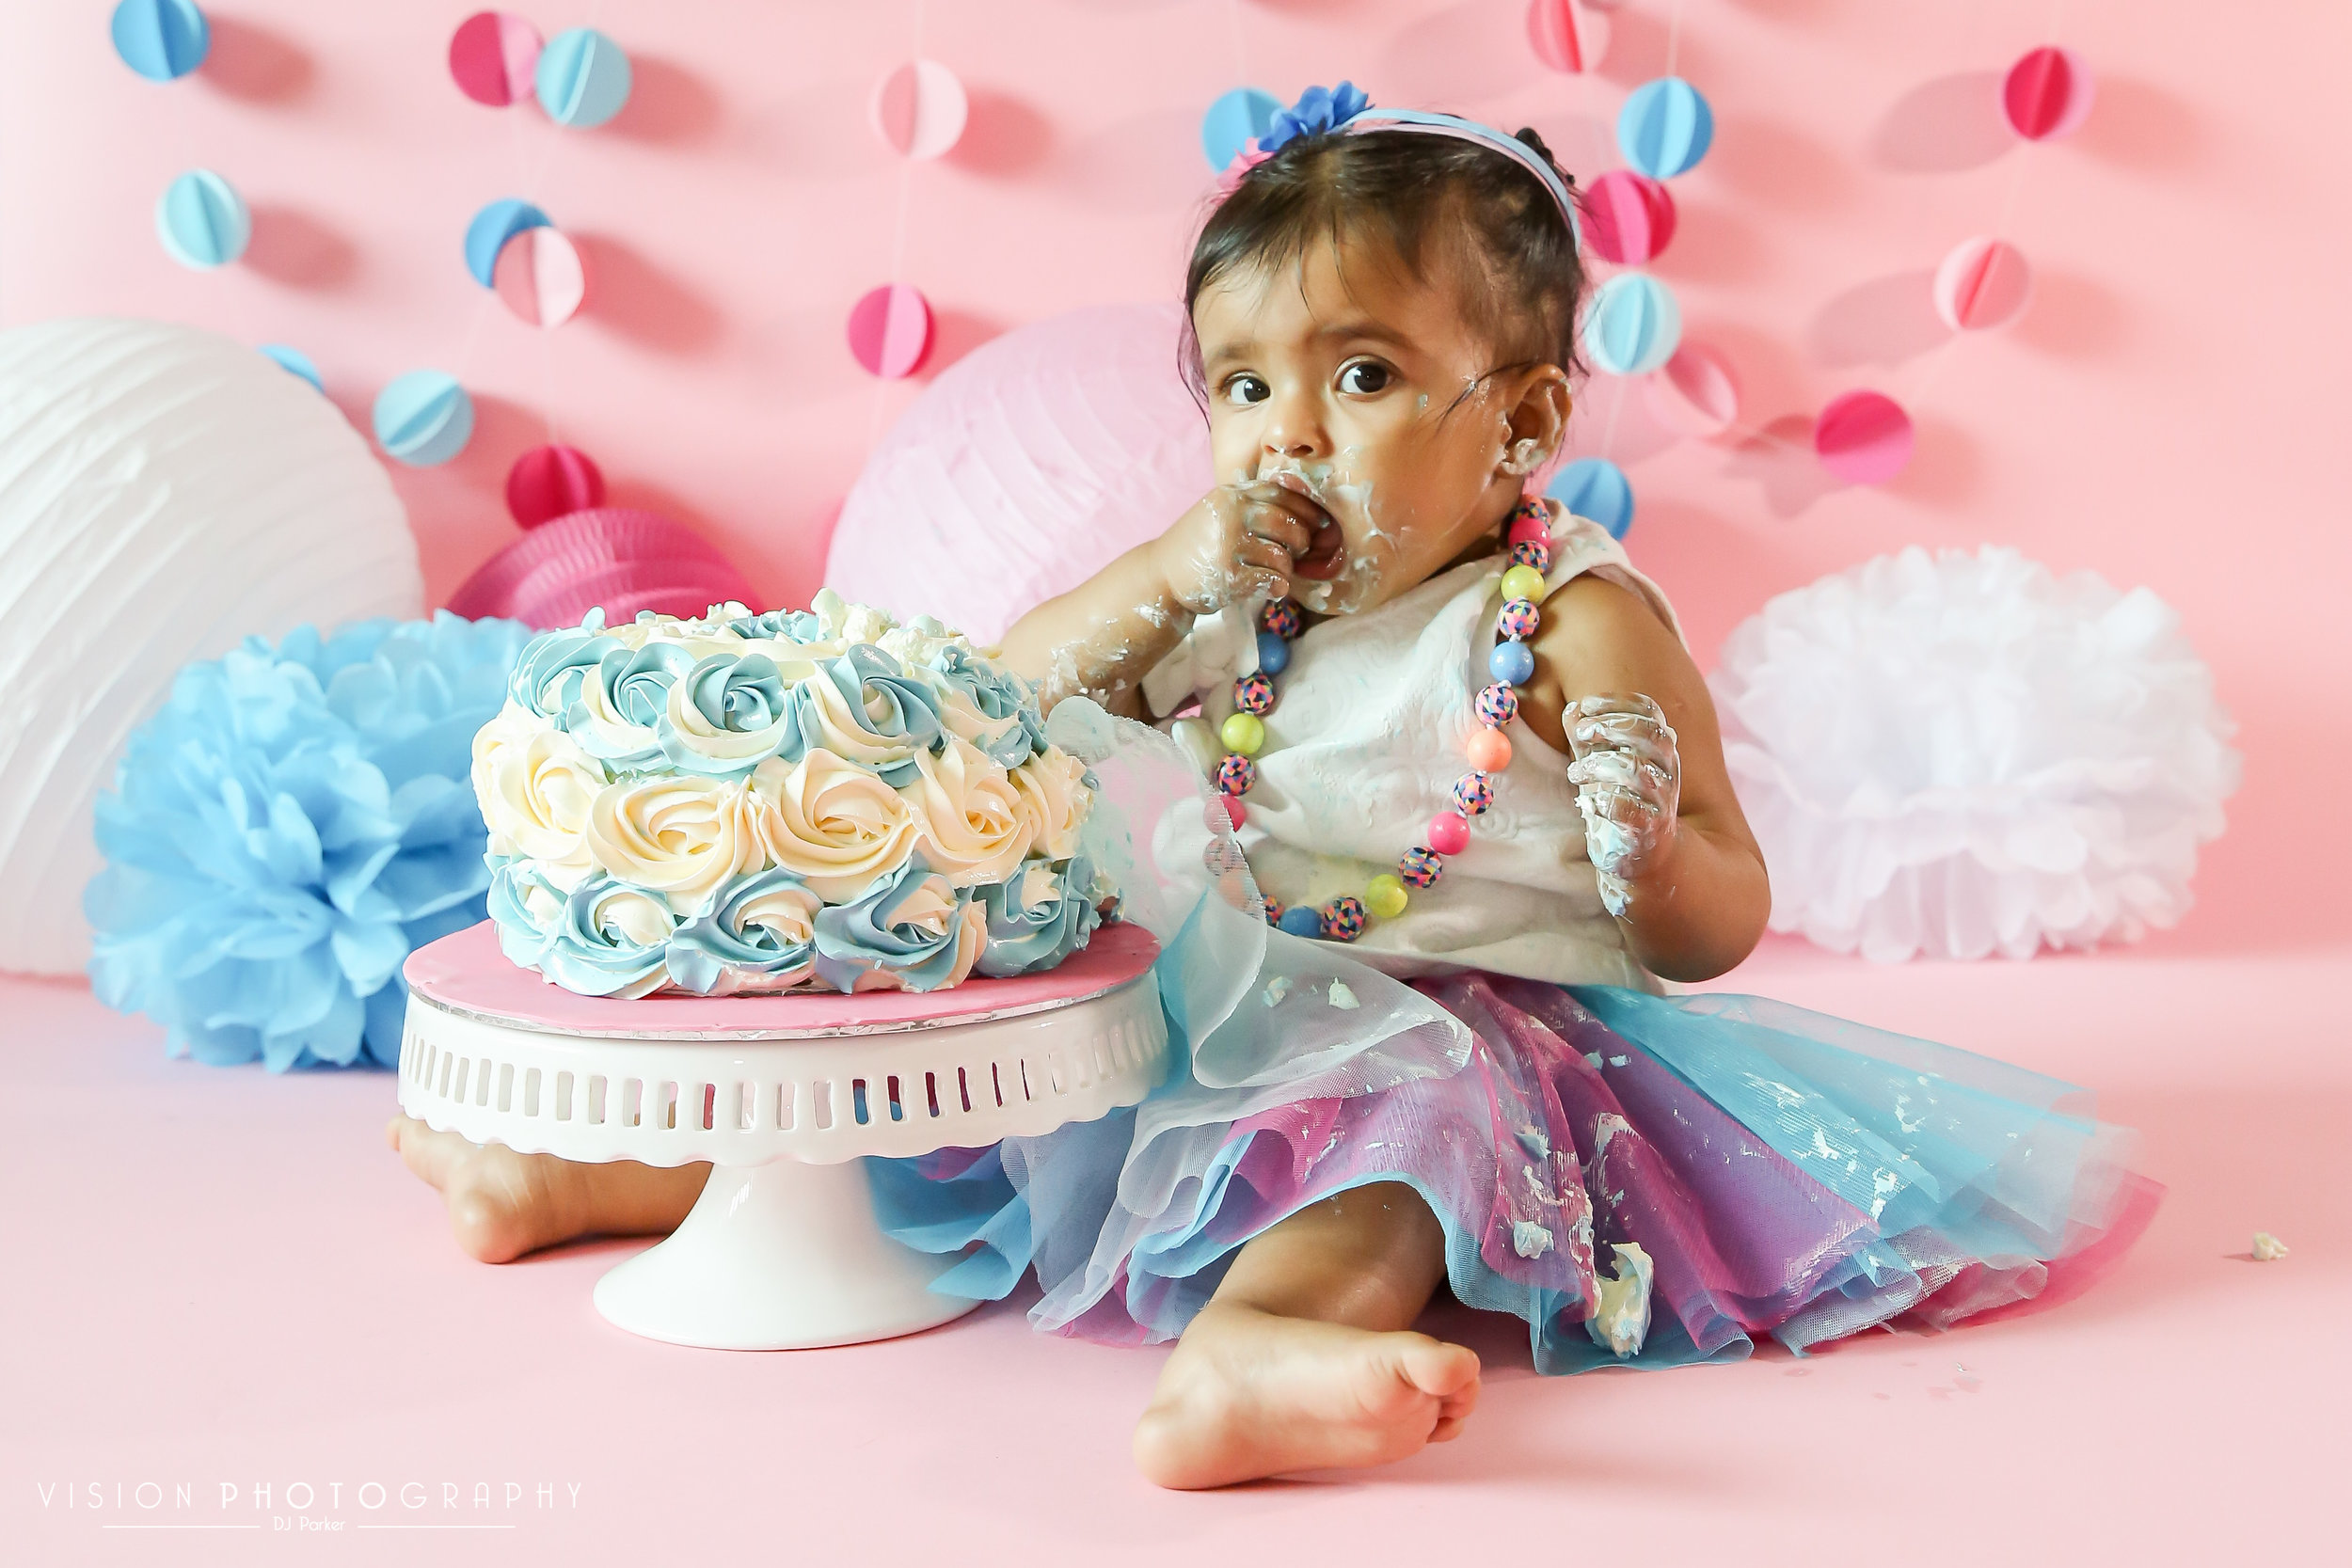 "Copy of <strong>Vedika Cake Smash</strong><a href=""/vedika-cake-smash-portfolio"">View Gallery »<a>"